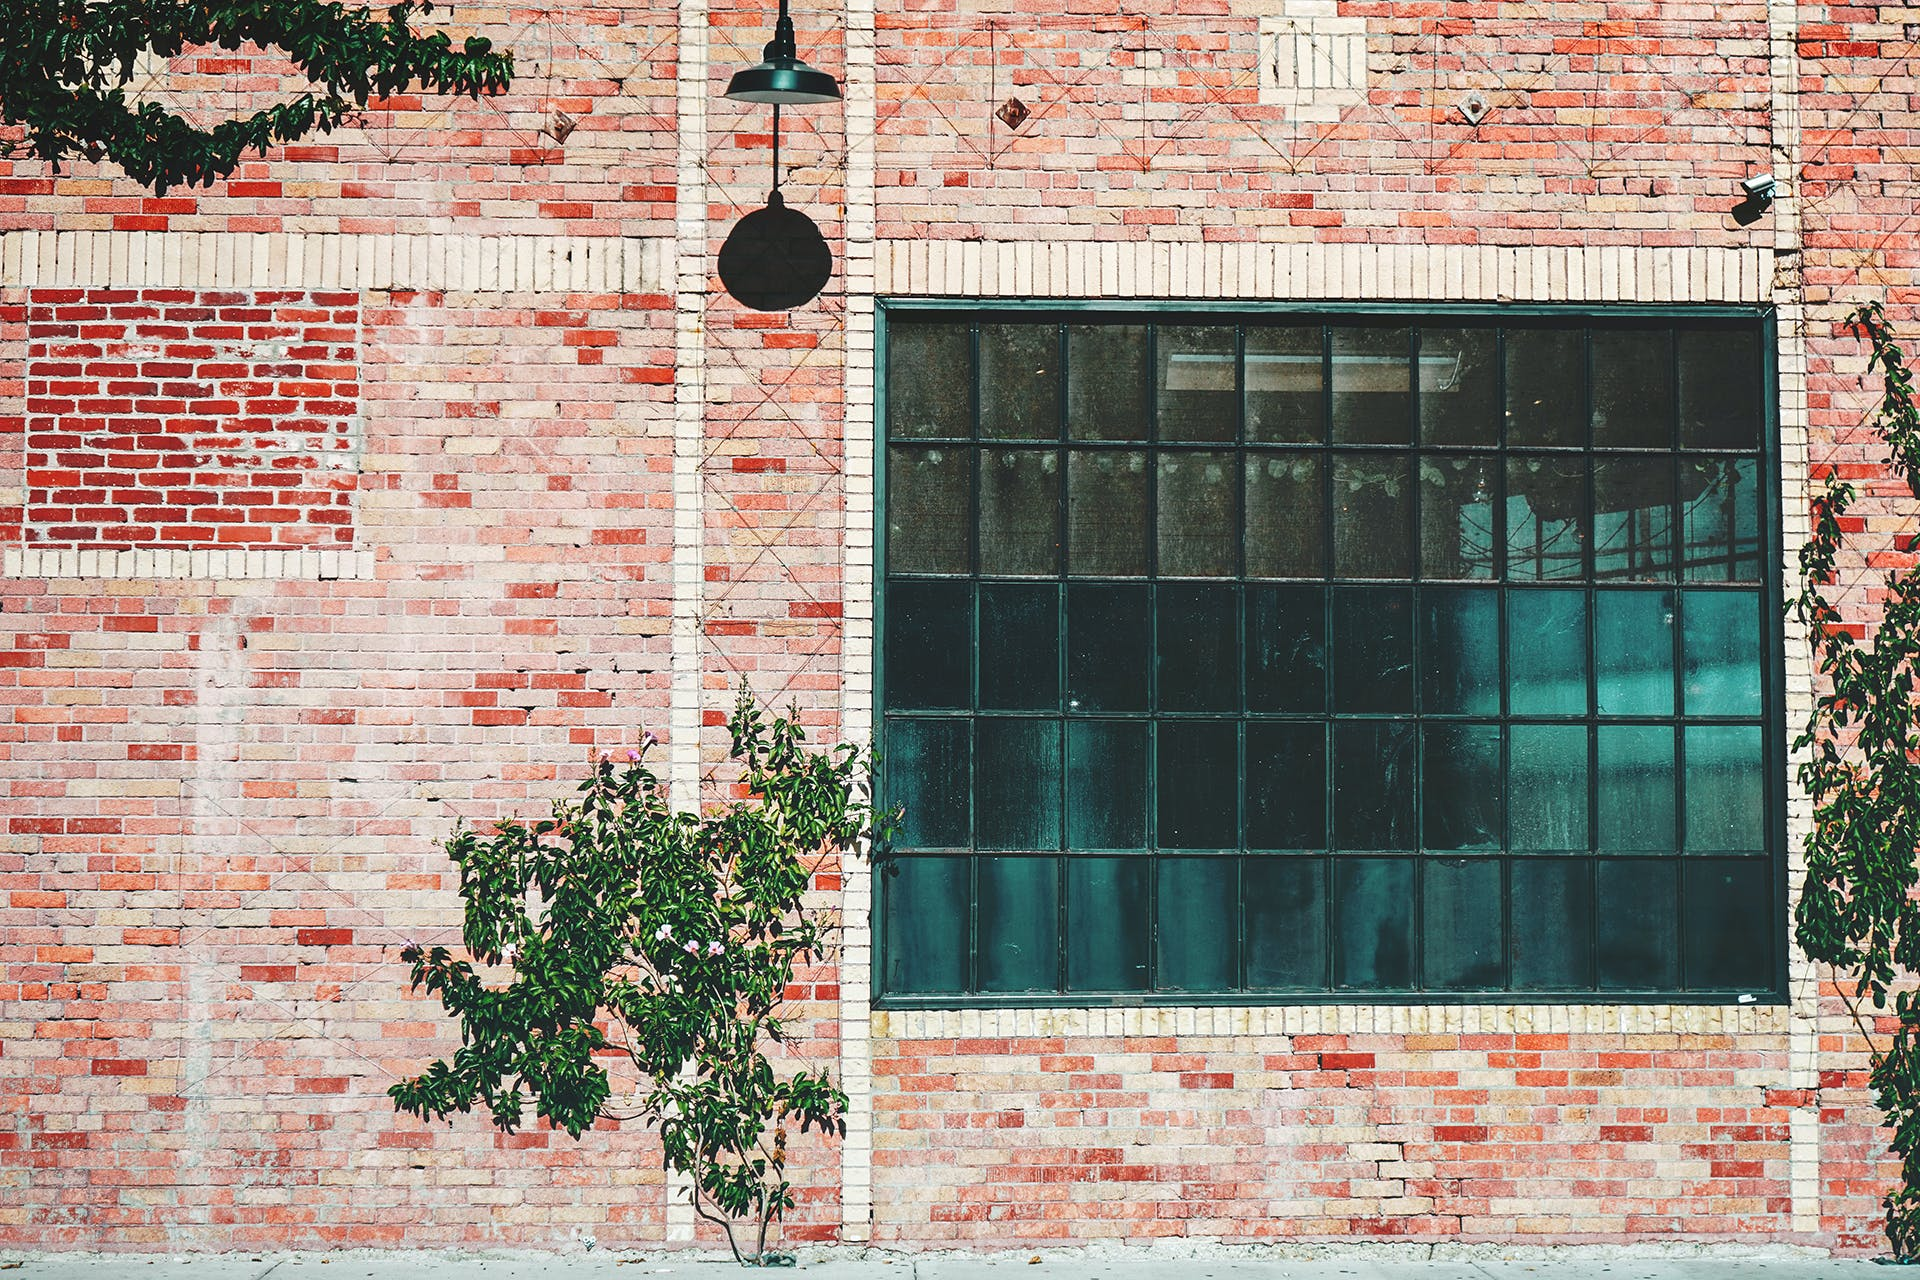 Brown and Red Concrete Brick Building